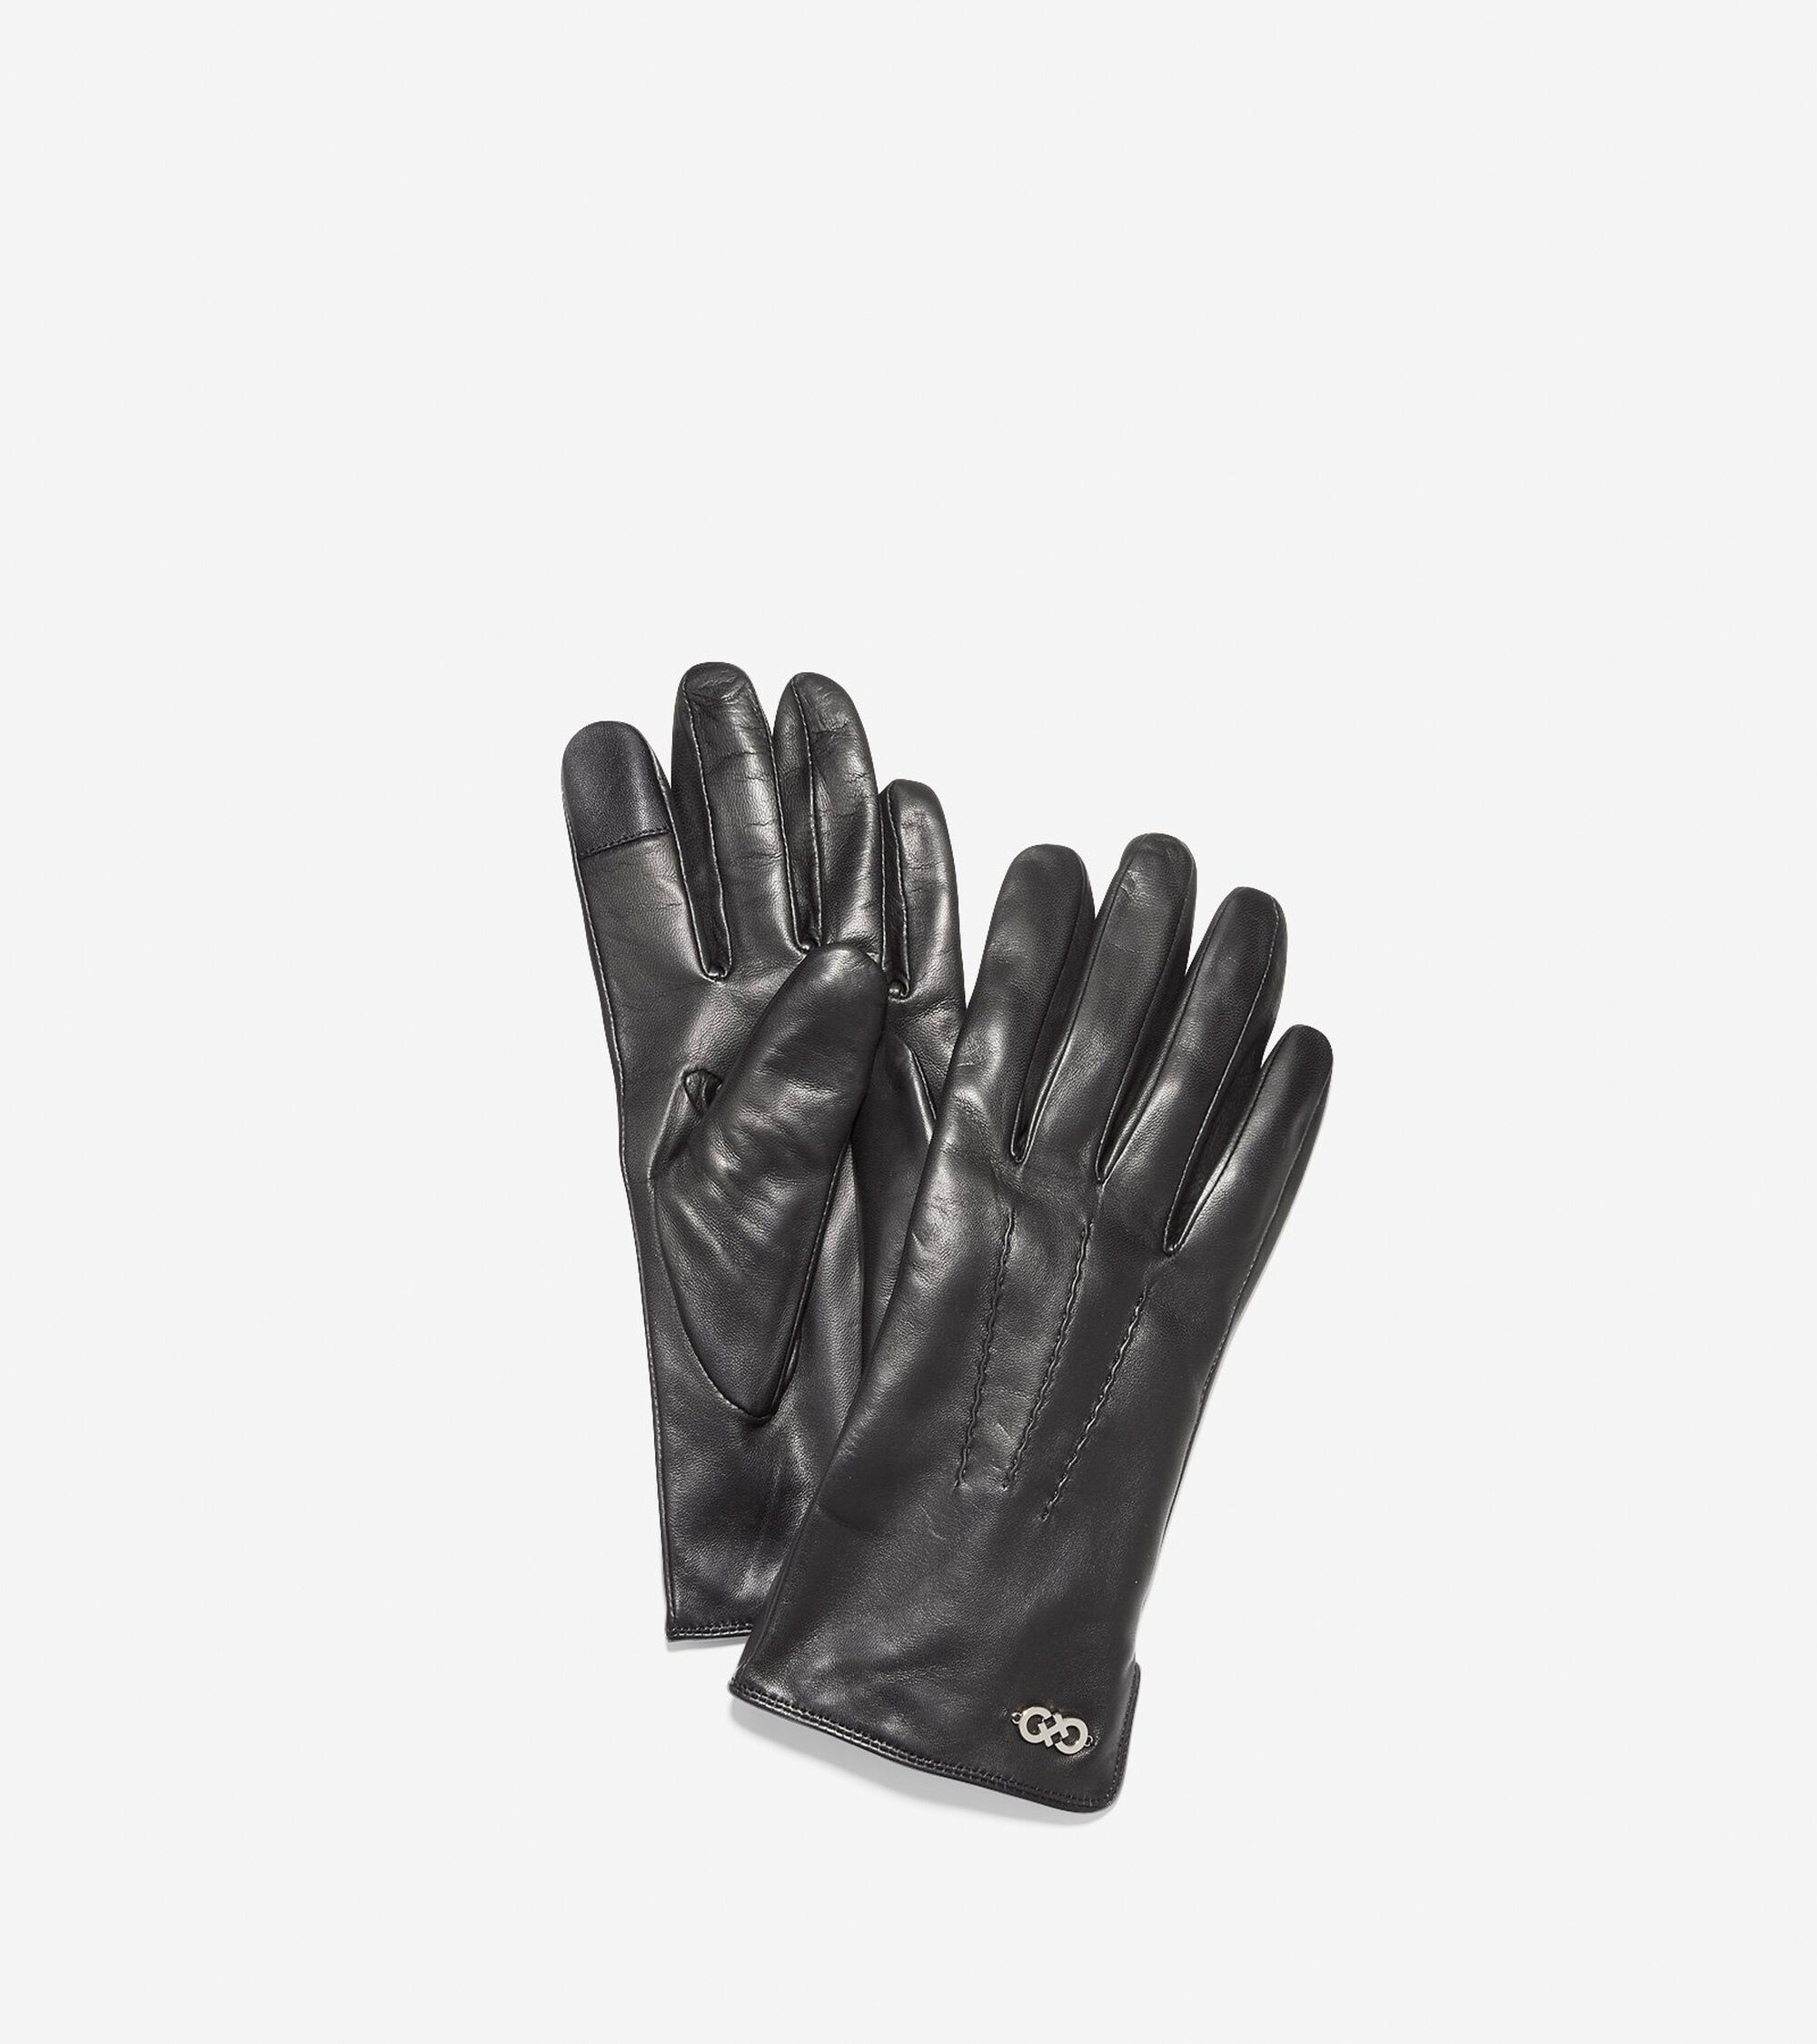 Cole haan black leather gloves - Women S Lambskin Leather Gloves Women S Lambskin Leather Gloves Colehaan